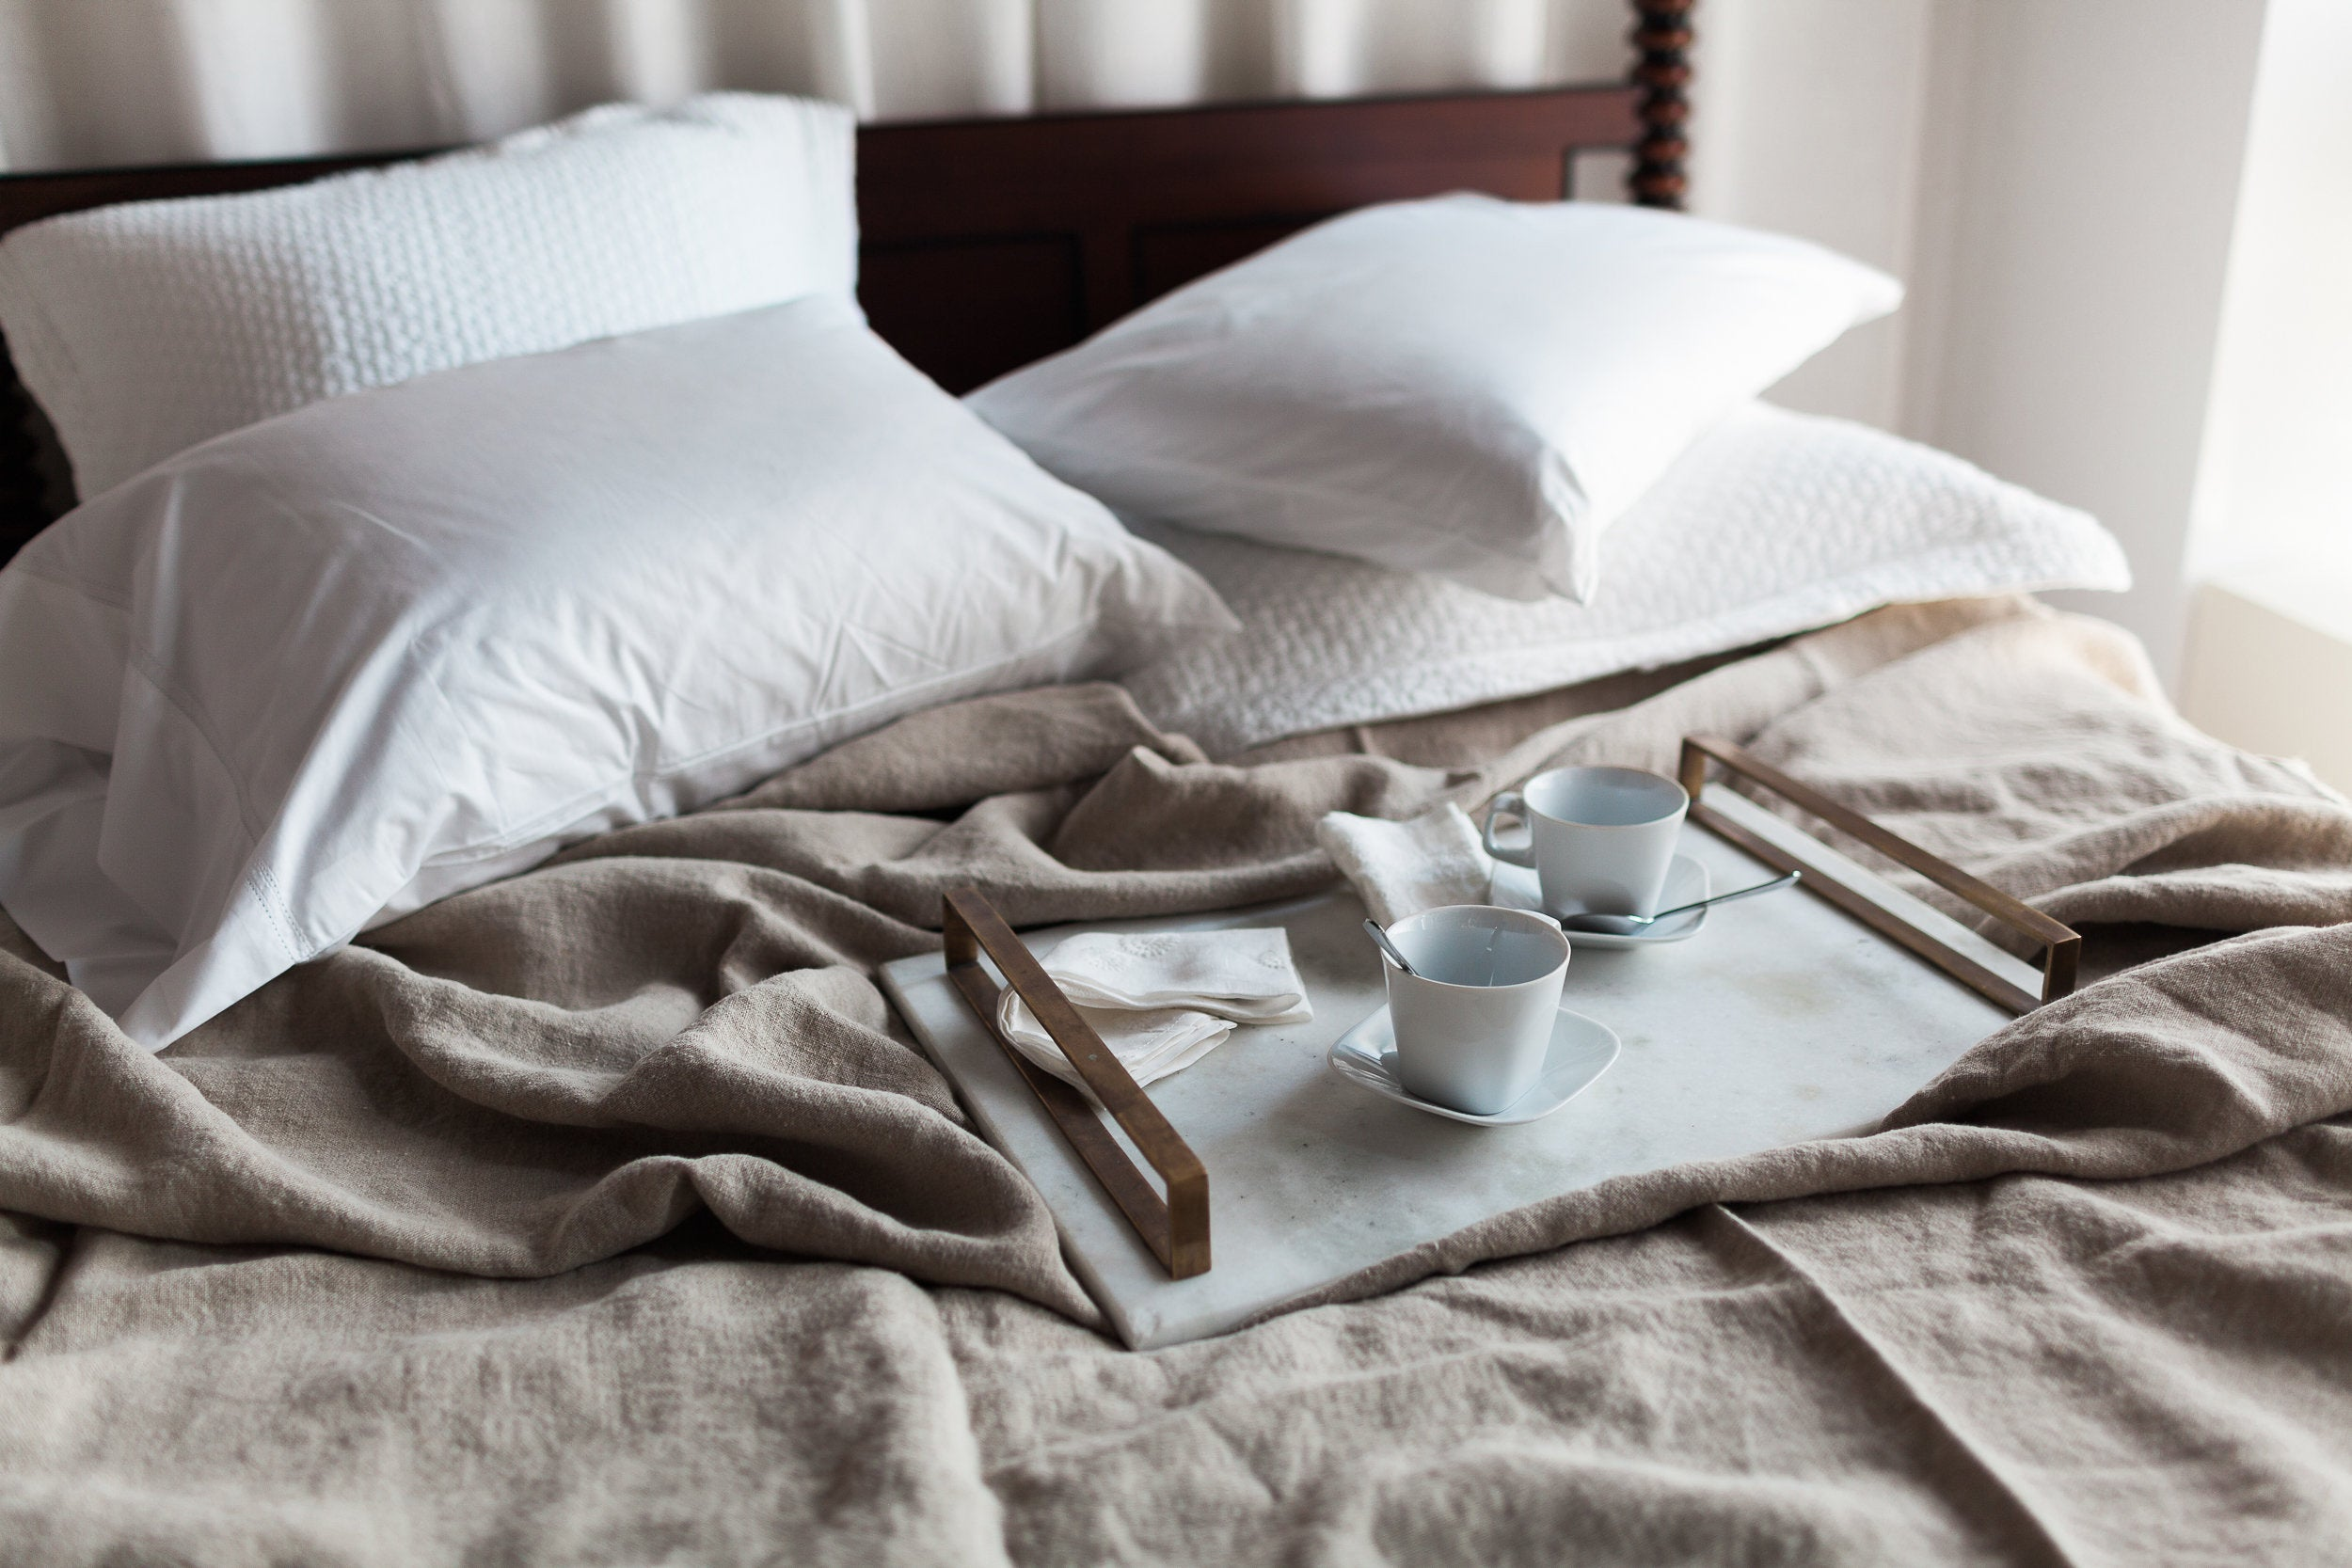 Messy bed layered for hot summer weather with tray and coffee mugs